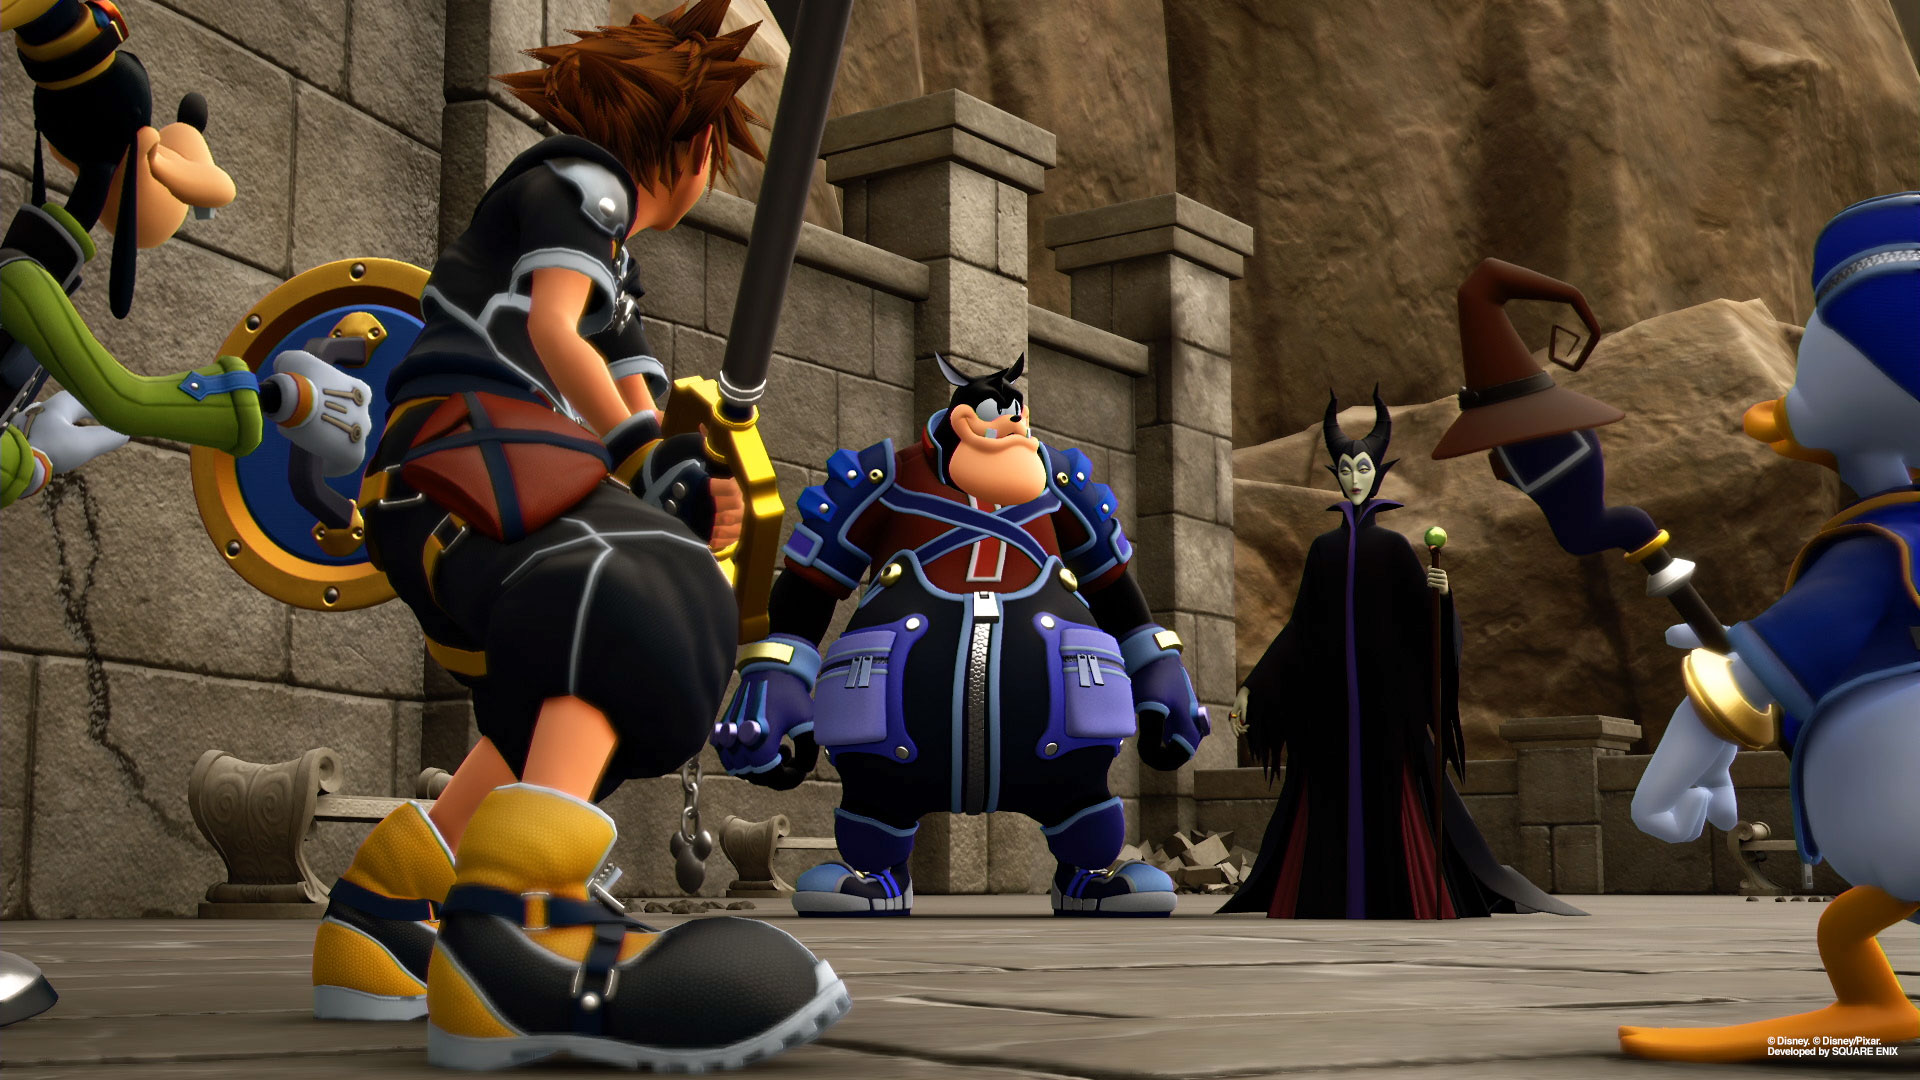 Kingdom hearts 3 features preview image 2